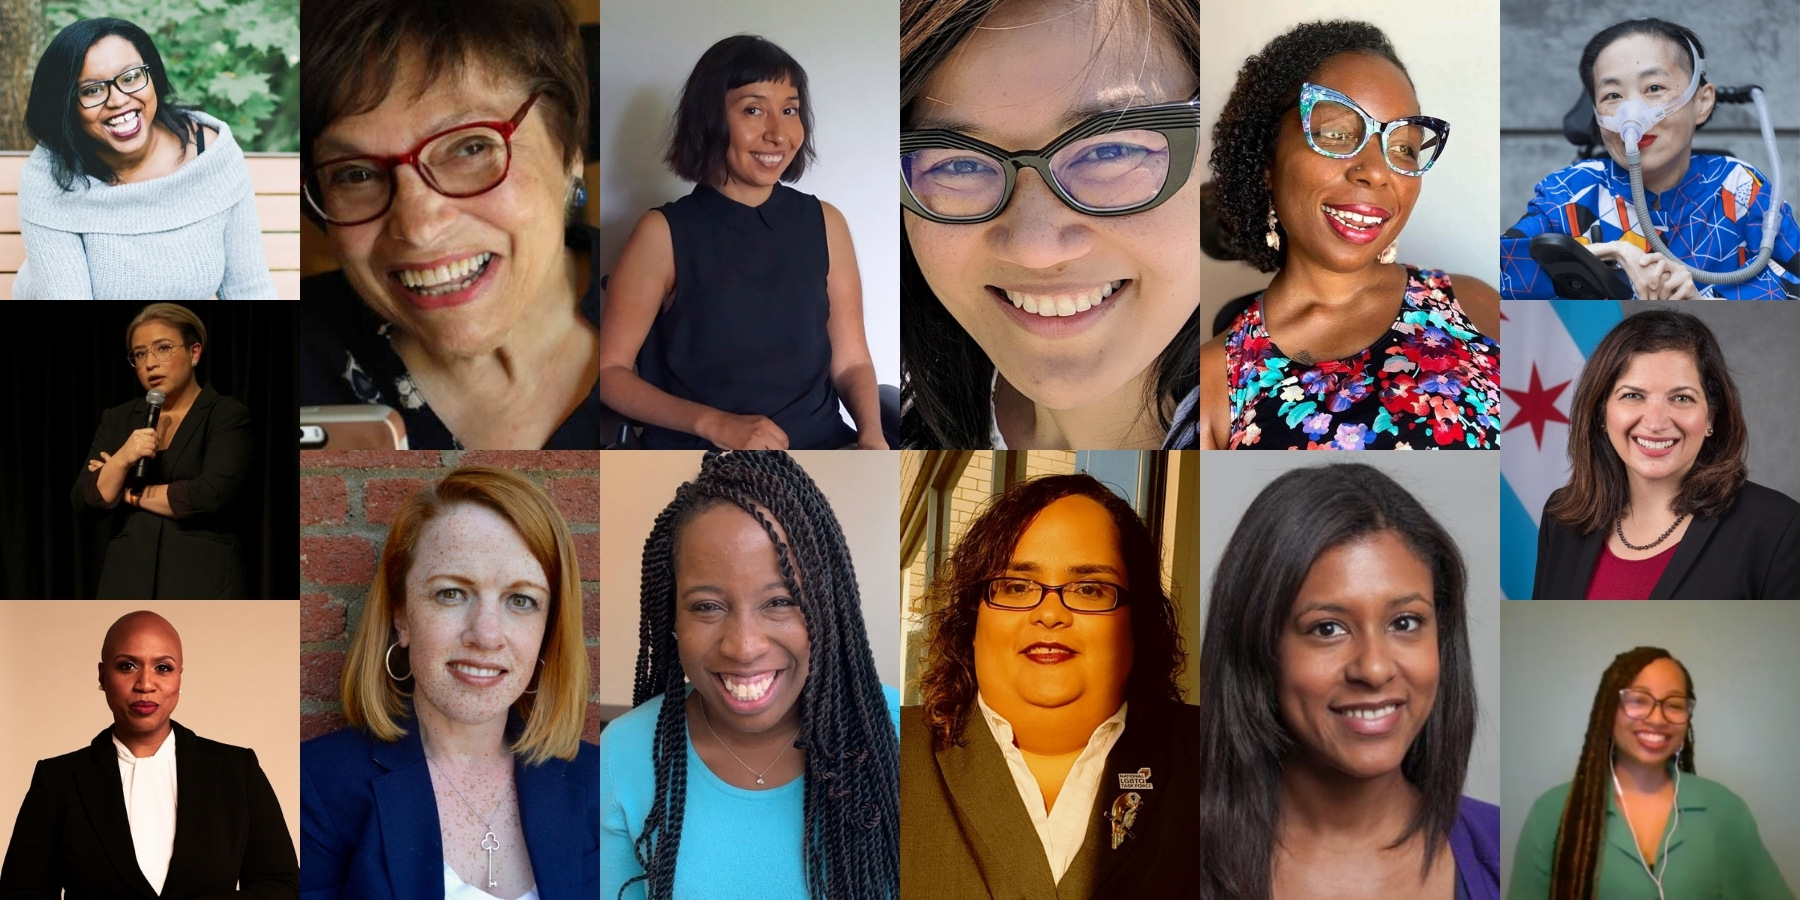 A collage of 14 photos of women of various ages and races and disability.